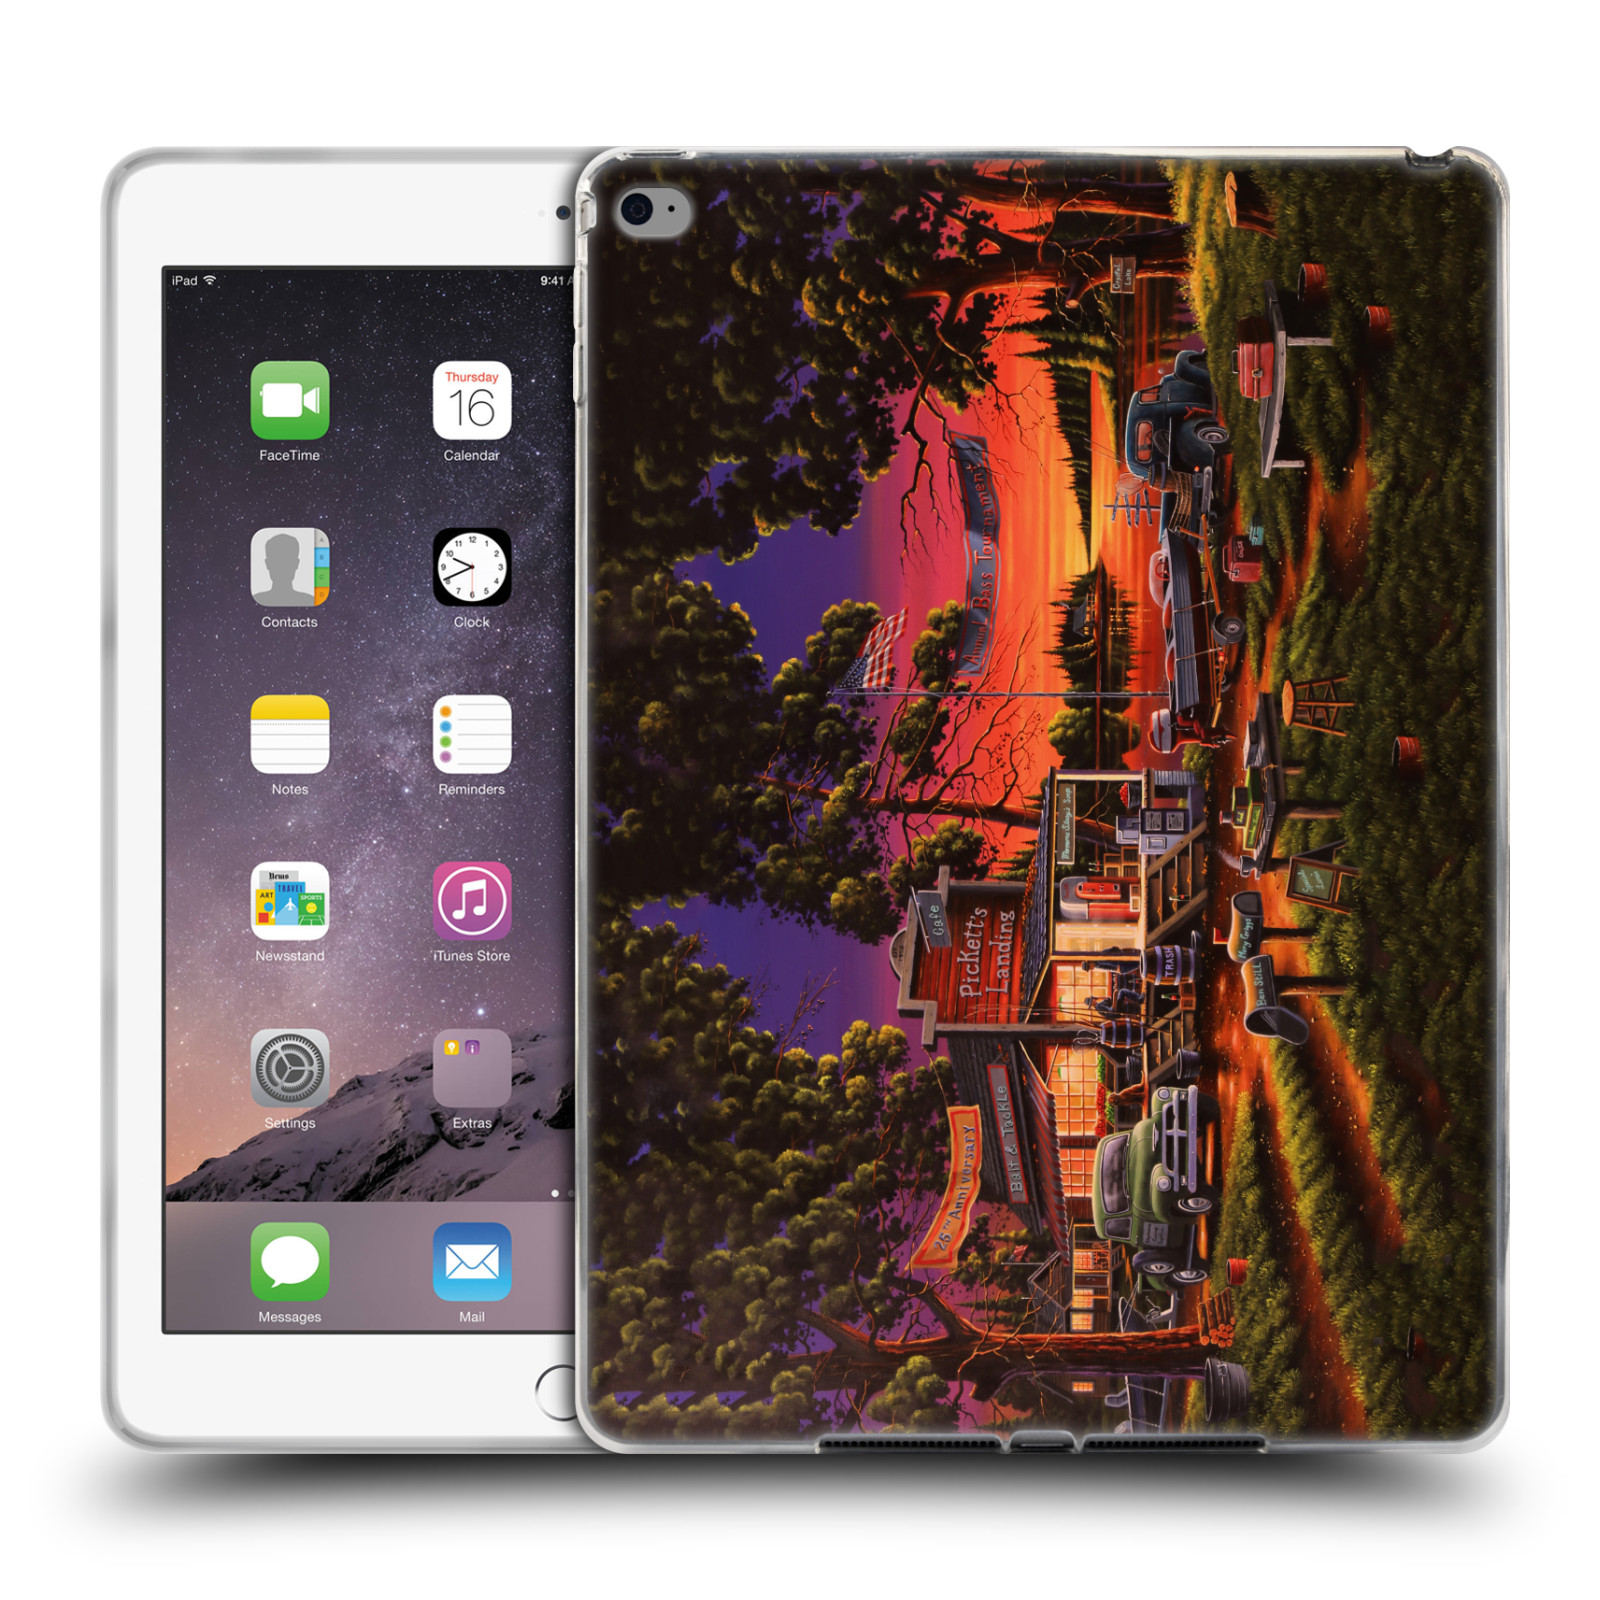 UFFICIALE-GENO-PEOPLES-ART-HALLOWEEN-CASE-IN-GEL-PER-APPLE-SAMSUNG-TABLETS